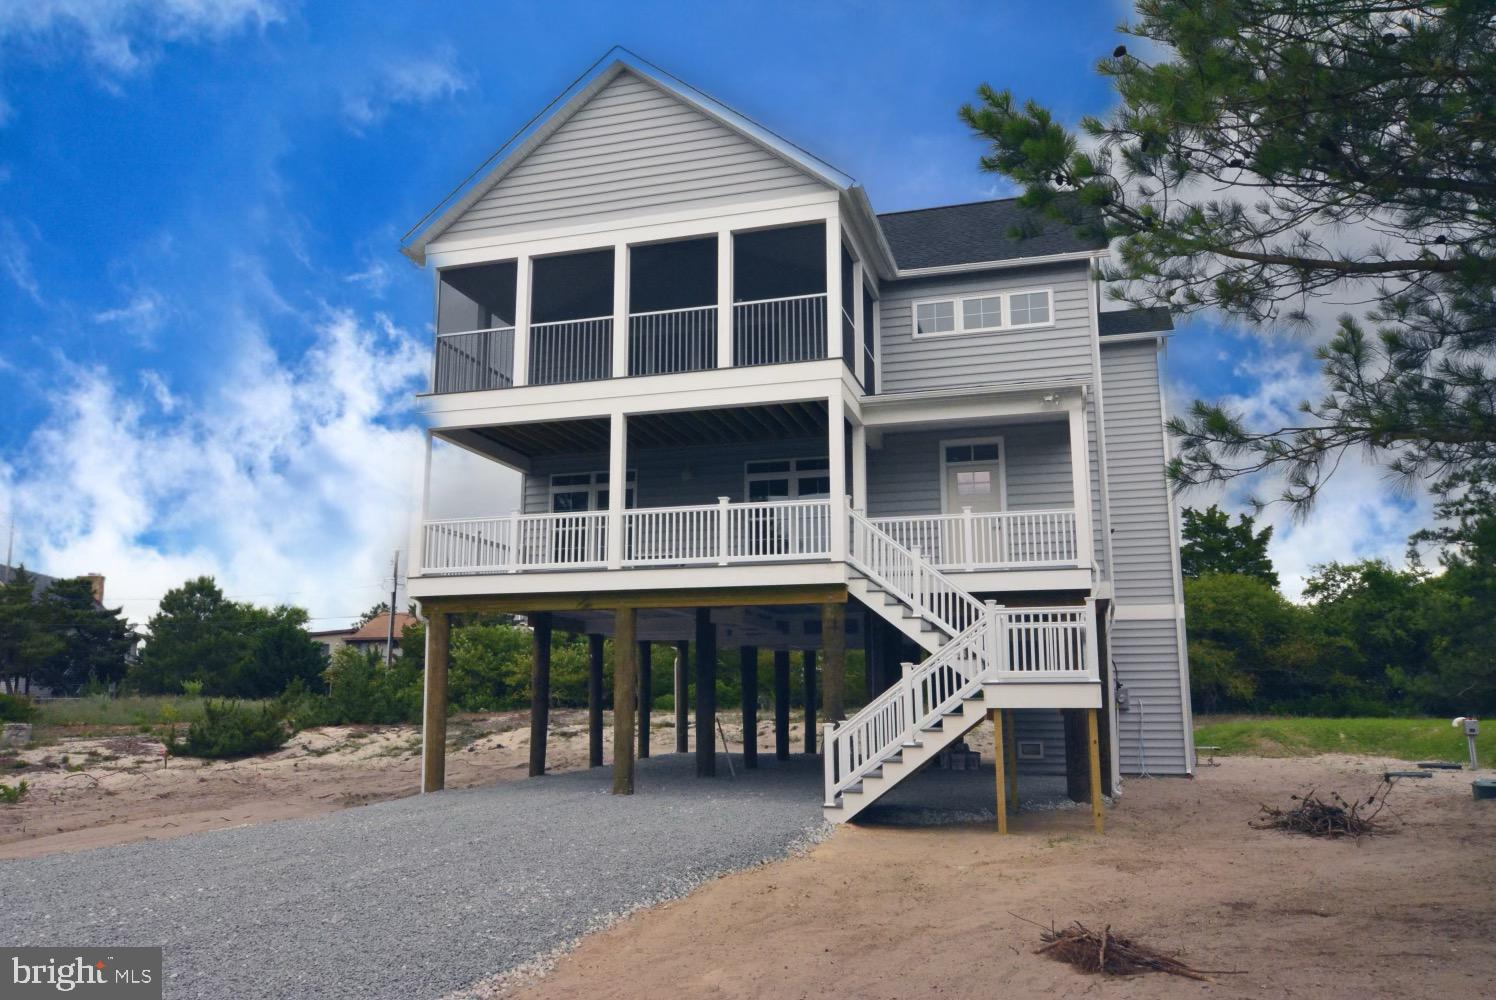 ARE YOU LOOKING FOR NEW CONSTRUCTION A SHORT WALK TO THE BEACH! This beach home will be one of the best built homes to live in on Broadkill Beach. It features 3 bedroom's plus an office that could be used as a 4th bedroom, 2.5 bathrooms, large open living room with stone fireplace that opens to the kitchen. Looking to entertain? Look no further then this spacious kitchen with soft close cabinets, stainless steel appliances, walk in pantry, and more.  Extra home features include elevator, hardwood floors, tankless hot water heater, and more .  Take in the outdoors and enjoy the large screened in porch on top floor, a 2nd porch on the main level off the bedrooms. Enjoy partial views of the Delaware Bay and Primehook National Wildlife Refuge with a convenient walk to the beach that is 1 block away. Still time to work with the builder to customize your homes finishes. Photos are of a similar home that was built.